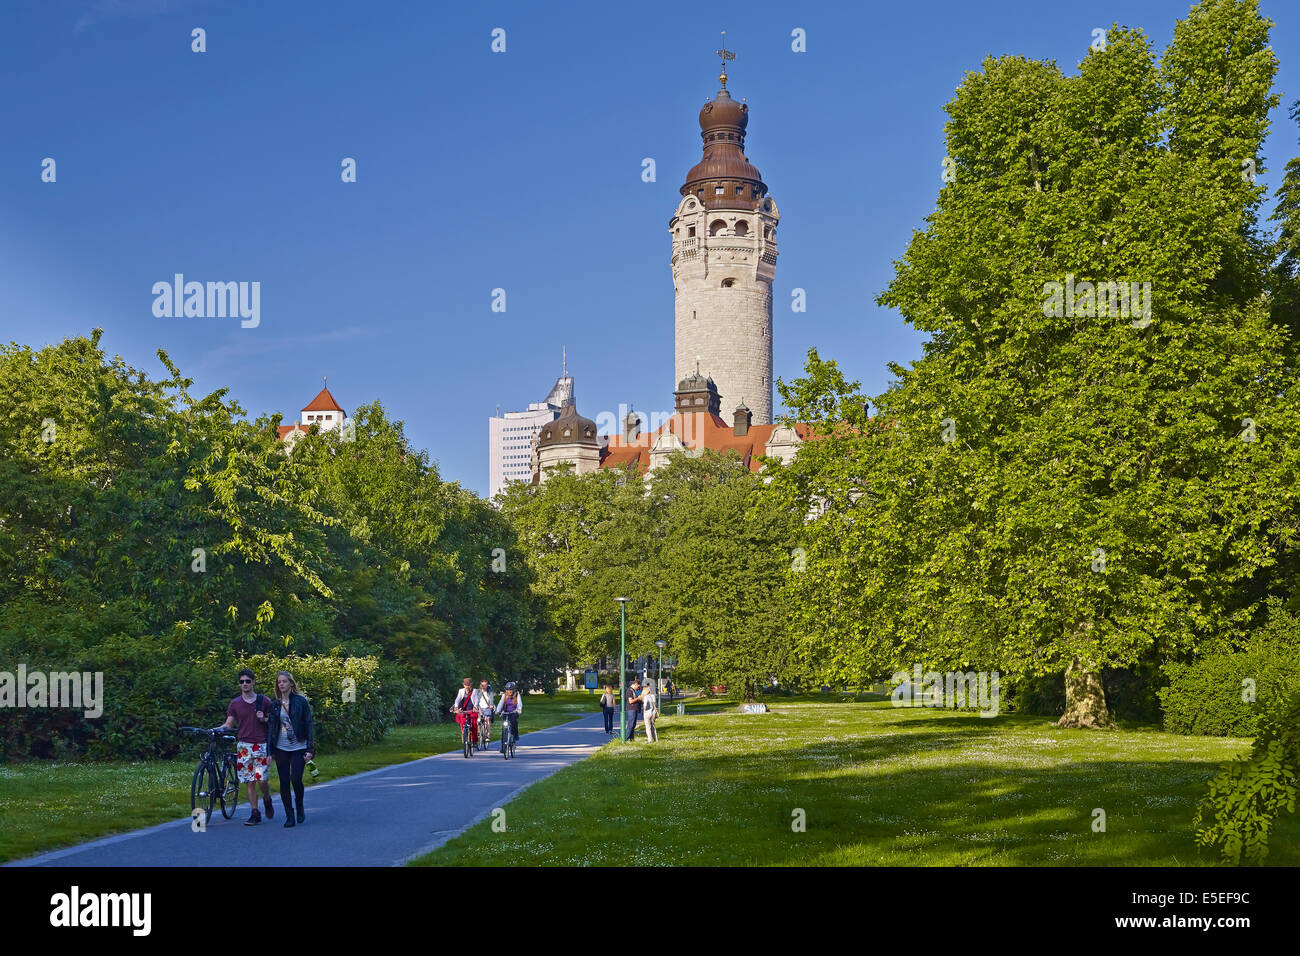 New Town Hall, Leipzig, Germany - Stock Image